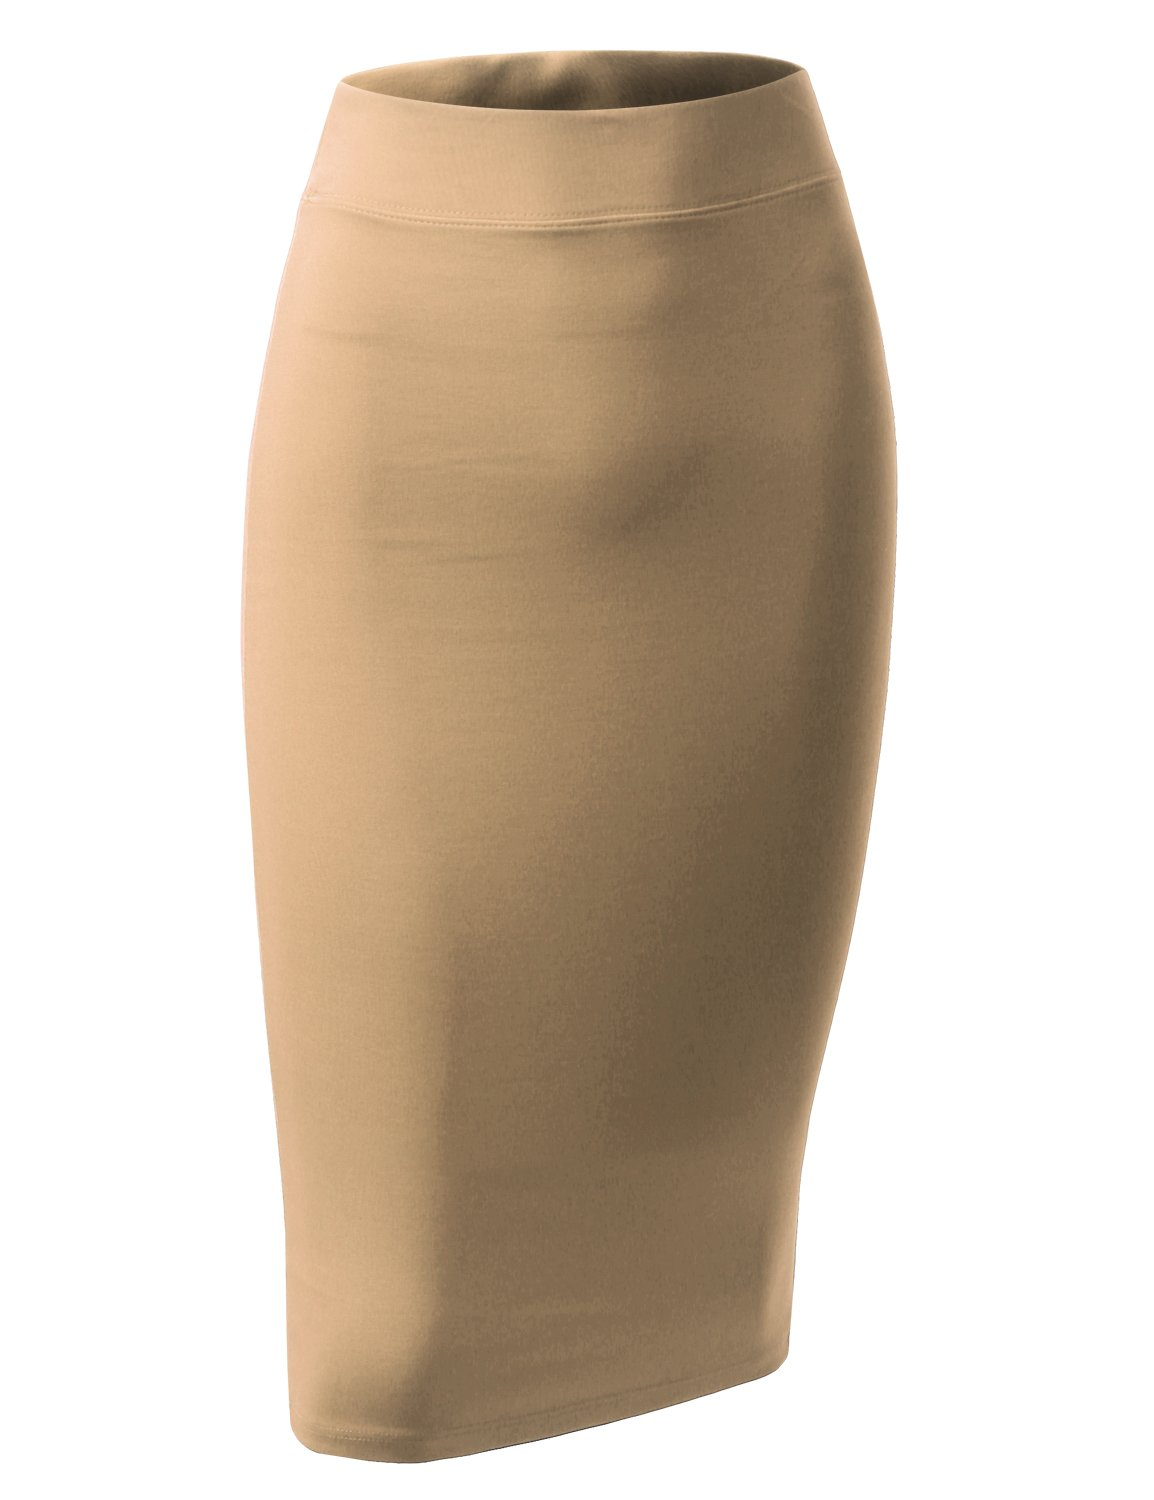 ALL FOR YOU Women's Slim Fit Ponte Pencil Skirt Khaki Small